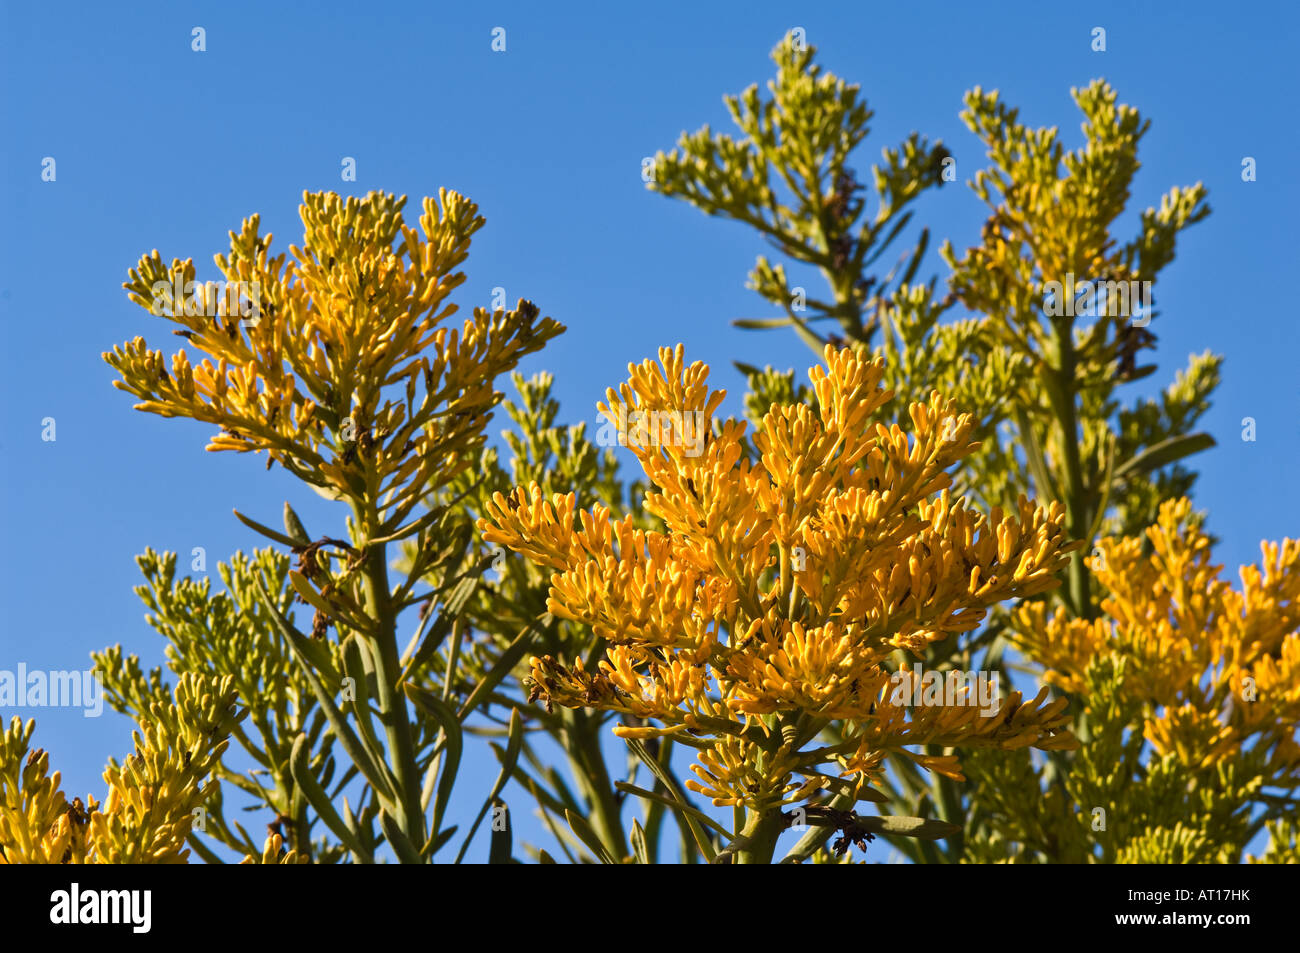 Western Australian Christmas Tree Nuytsia Floribunda Flowers Stock Photo Fitzgerald